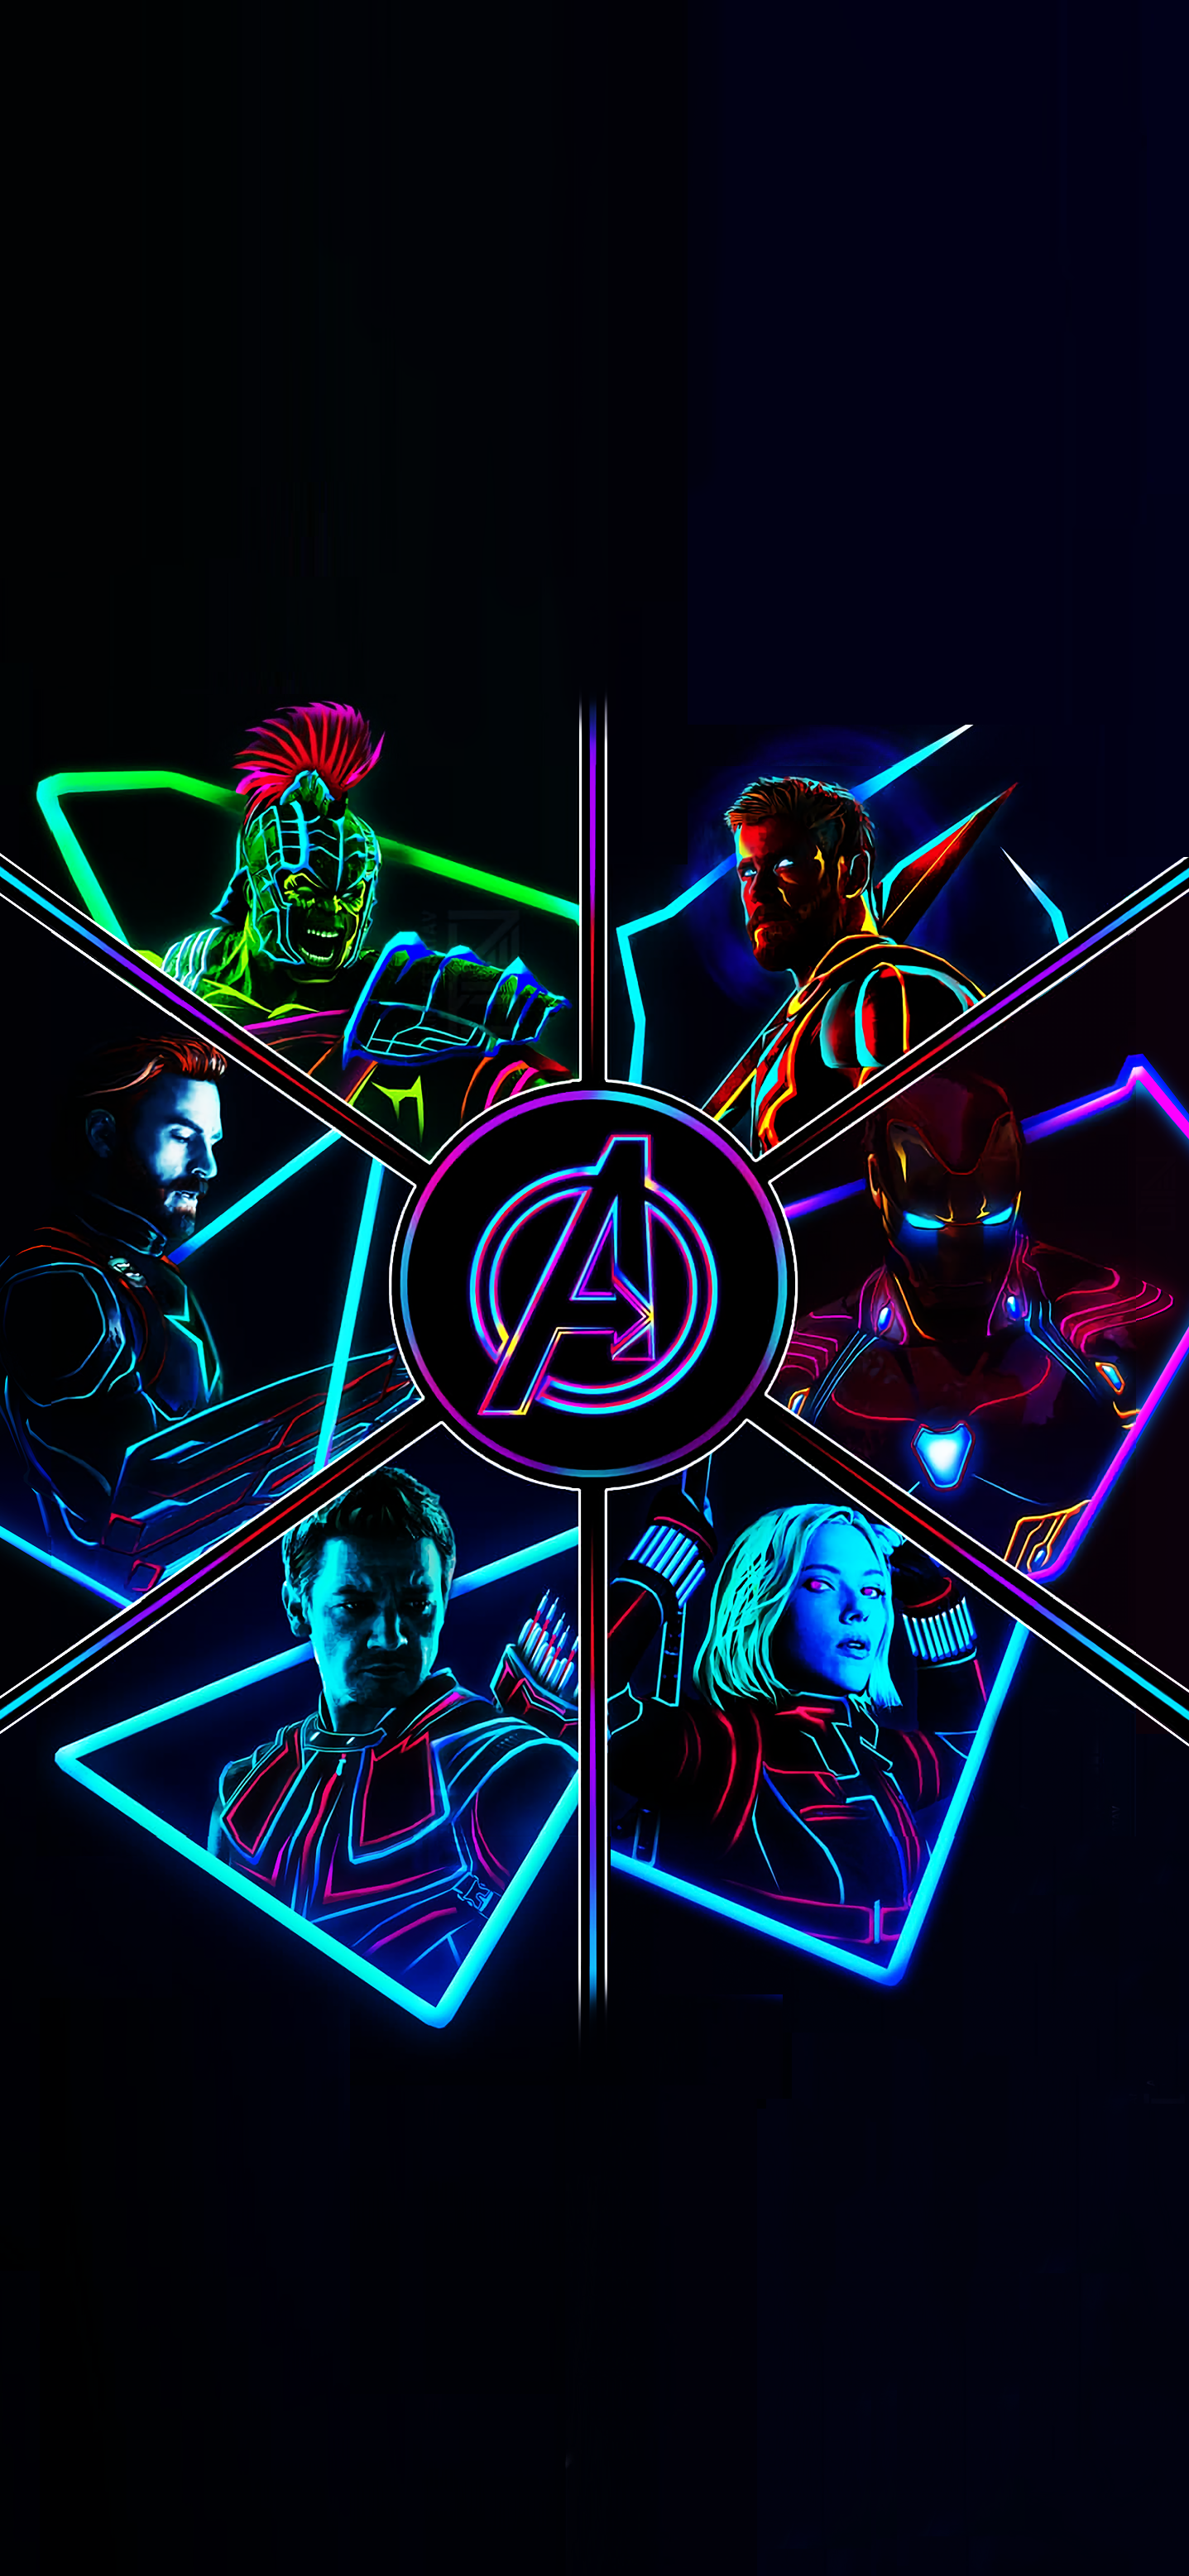 2012 Neon Avengers Full Res Phone Wallpapers